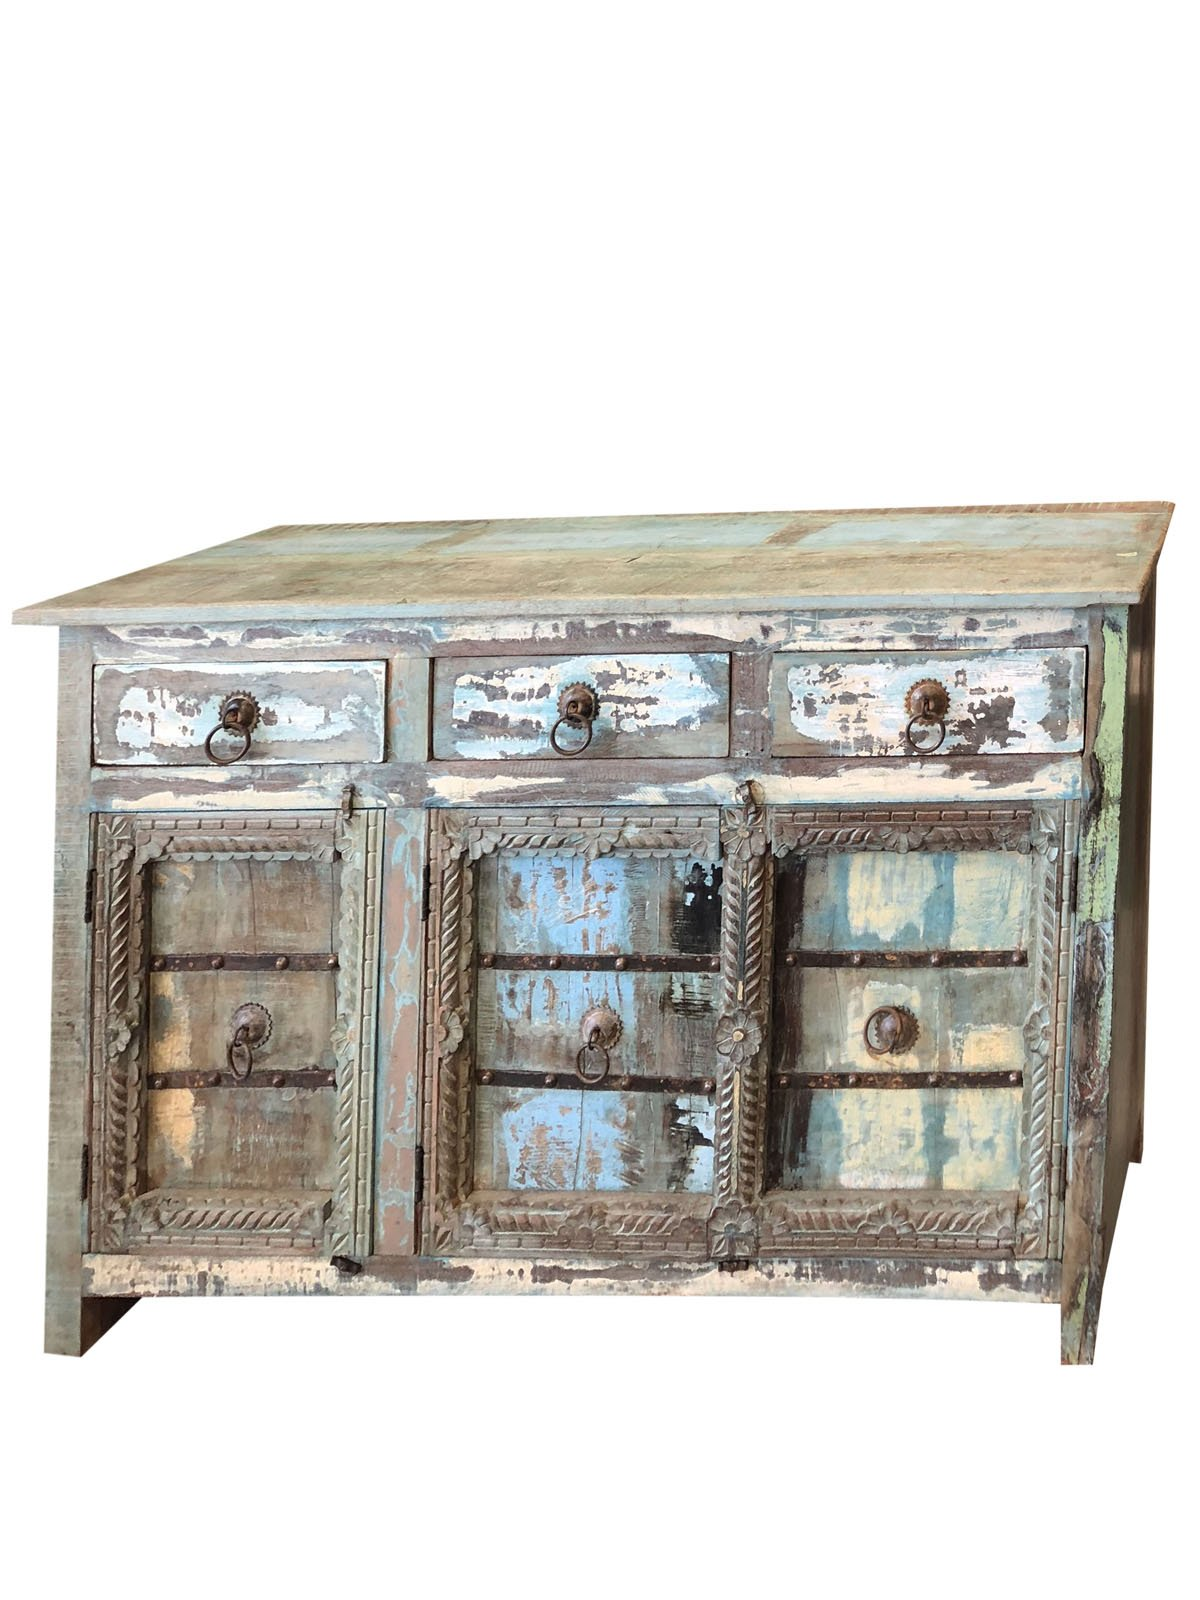 Mogul Interior Antique Sideboard Solid Wood Console Rustic Distressed Blue Chest Buffet Cabinet Furniture Farmhouse Chic by Mogul Interior (Image #1)